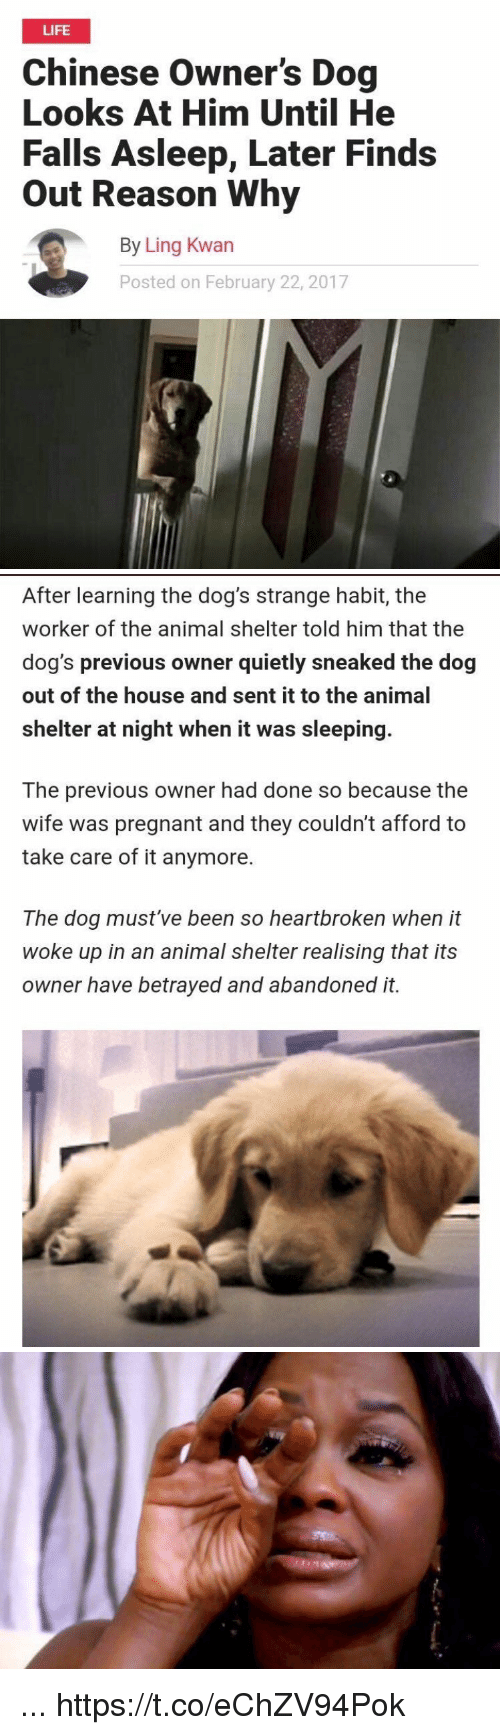 Dogs, Funny, and Life: LIFE  Chinese Owner's Dog  Looks At Him Until He  Falls Asleep, Later Finds  Out Reason Why  By Ling Kwan  Posted on February 22, 2017   After learning the dog's strange habit, the  worker of the animal shelter told him that the  dog's previous owner quietly sneaked the dog  out of the house and sent it to the animal  shelter at night when it was sleeping.  The previous owner had done so because the  wife was pregnant and they couldn't afford to  take care of it anymore.  The dog must've been so heartbroken when it  woke up in an animal shelter realising that its  owner have betrayed and abandoned it. ... https://t.co/eChZV94Pok